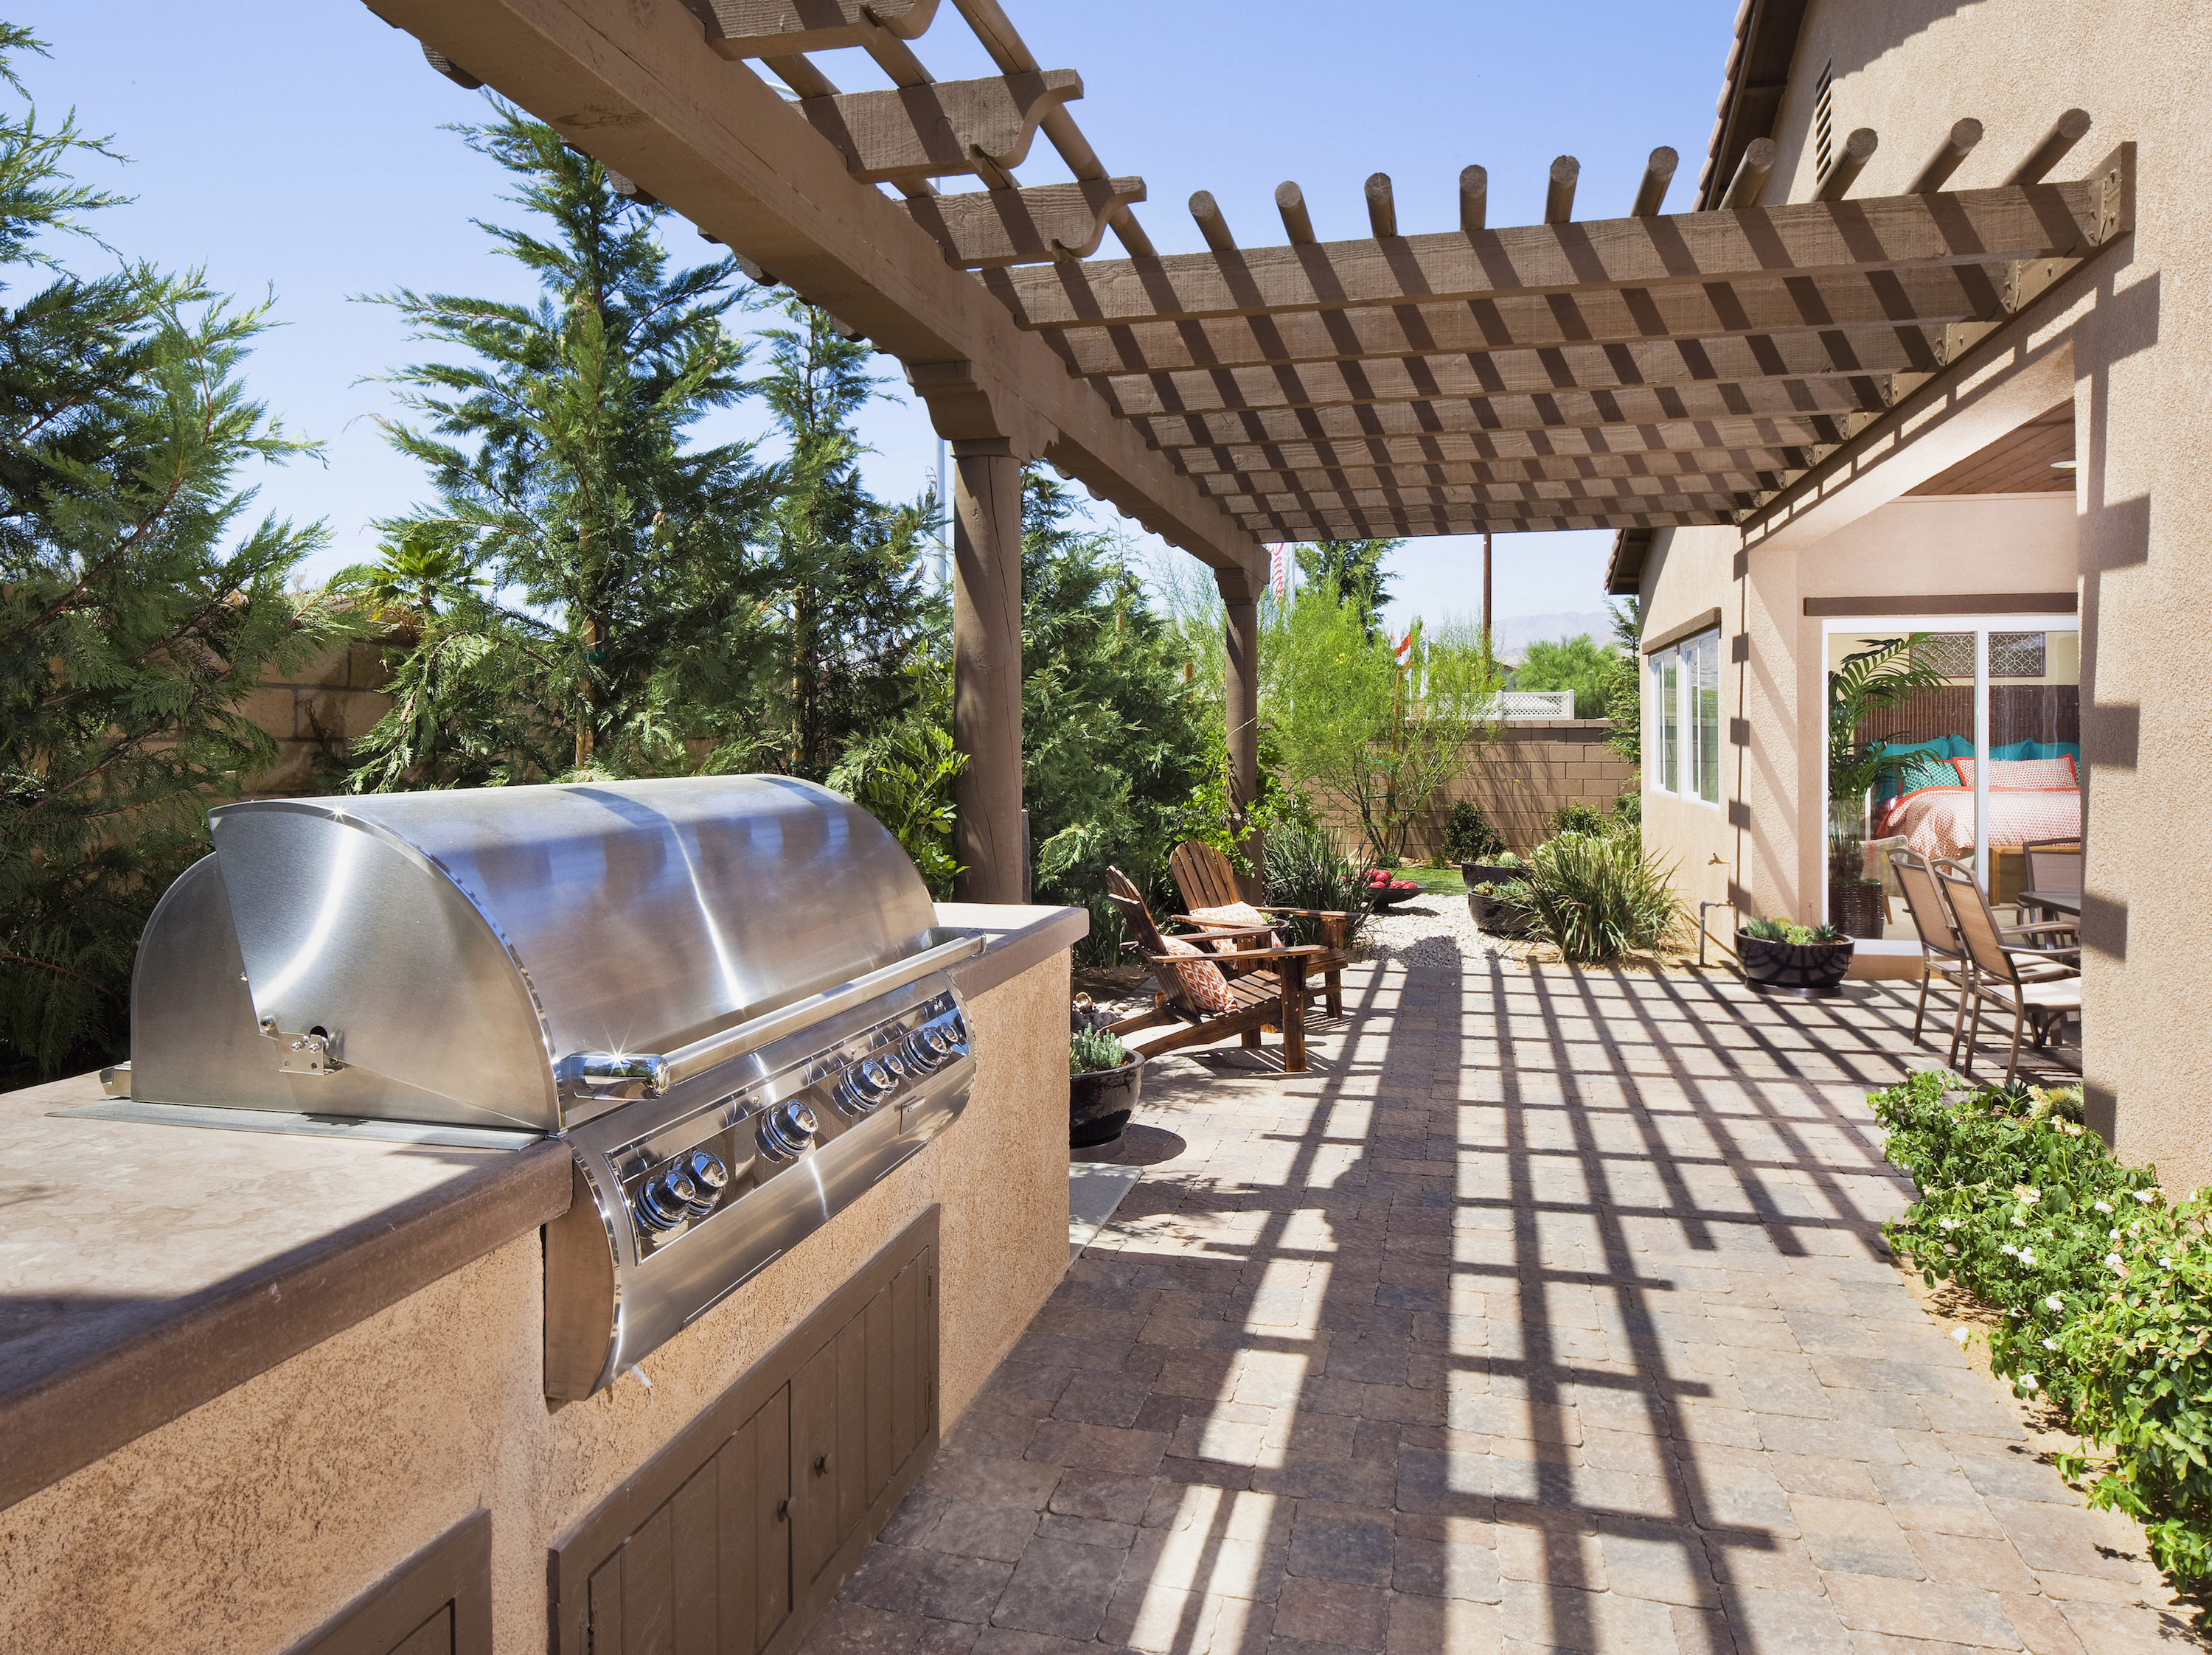 15 Outdoor Kitchen Design Ideas - Tips For Outdoor Cooking on Patio Kitchen Designs id=50702